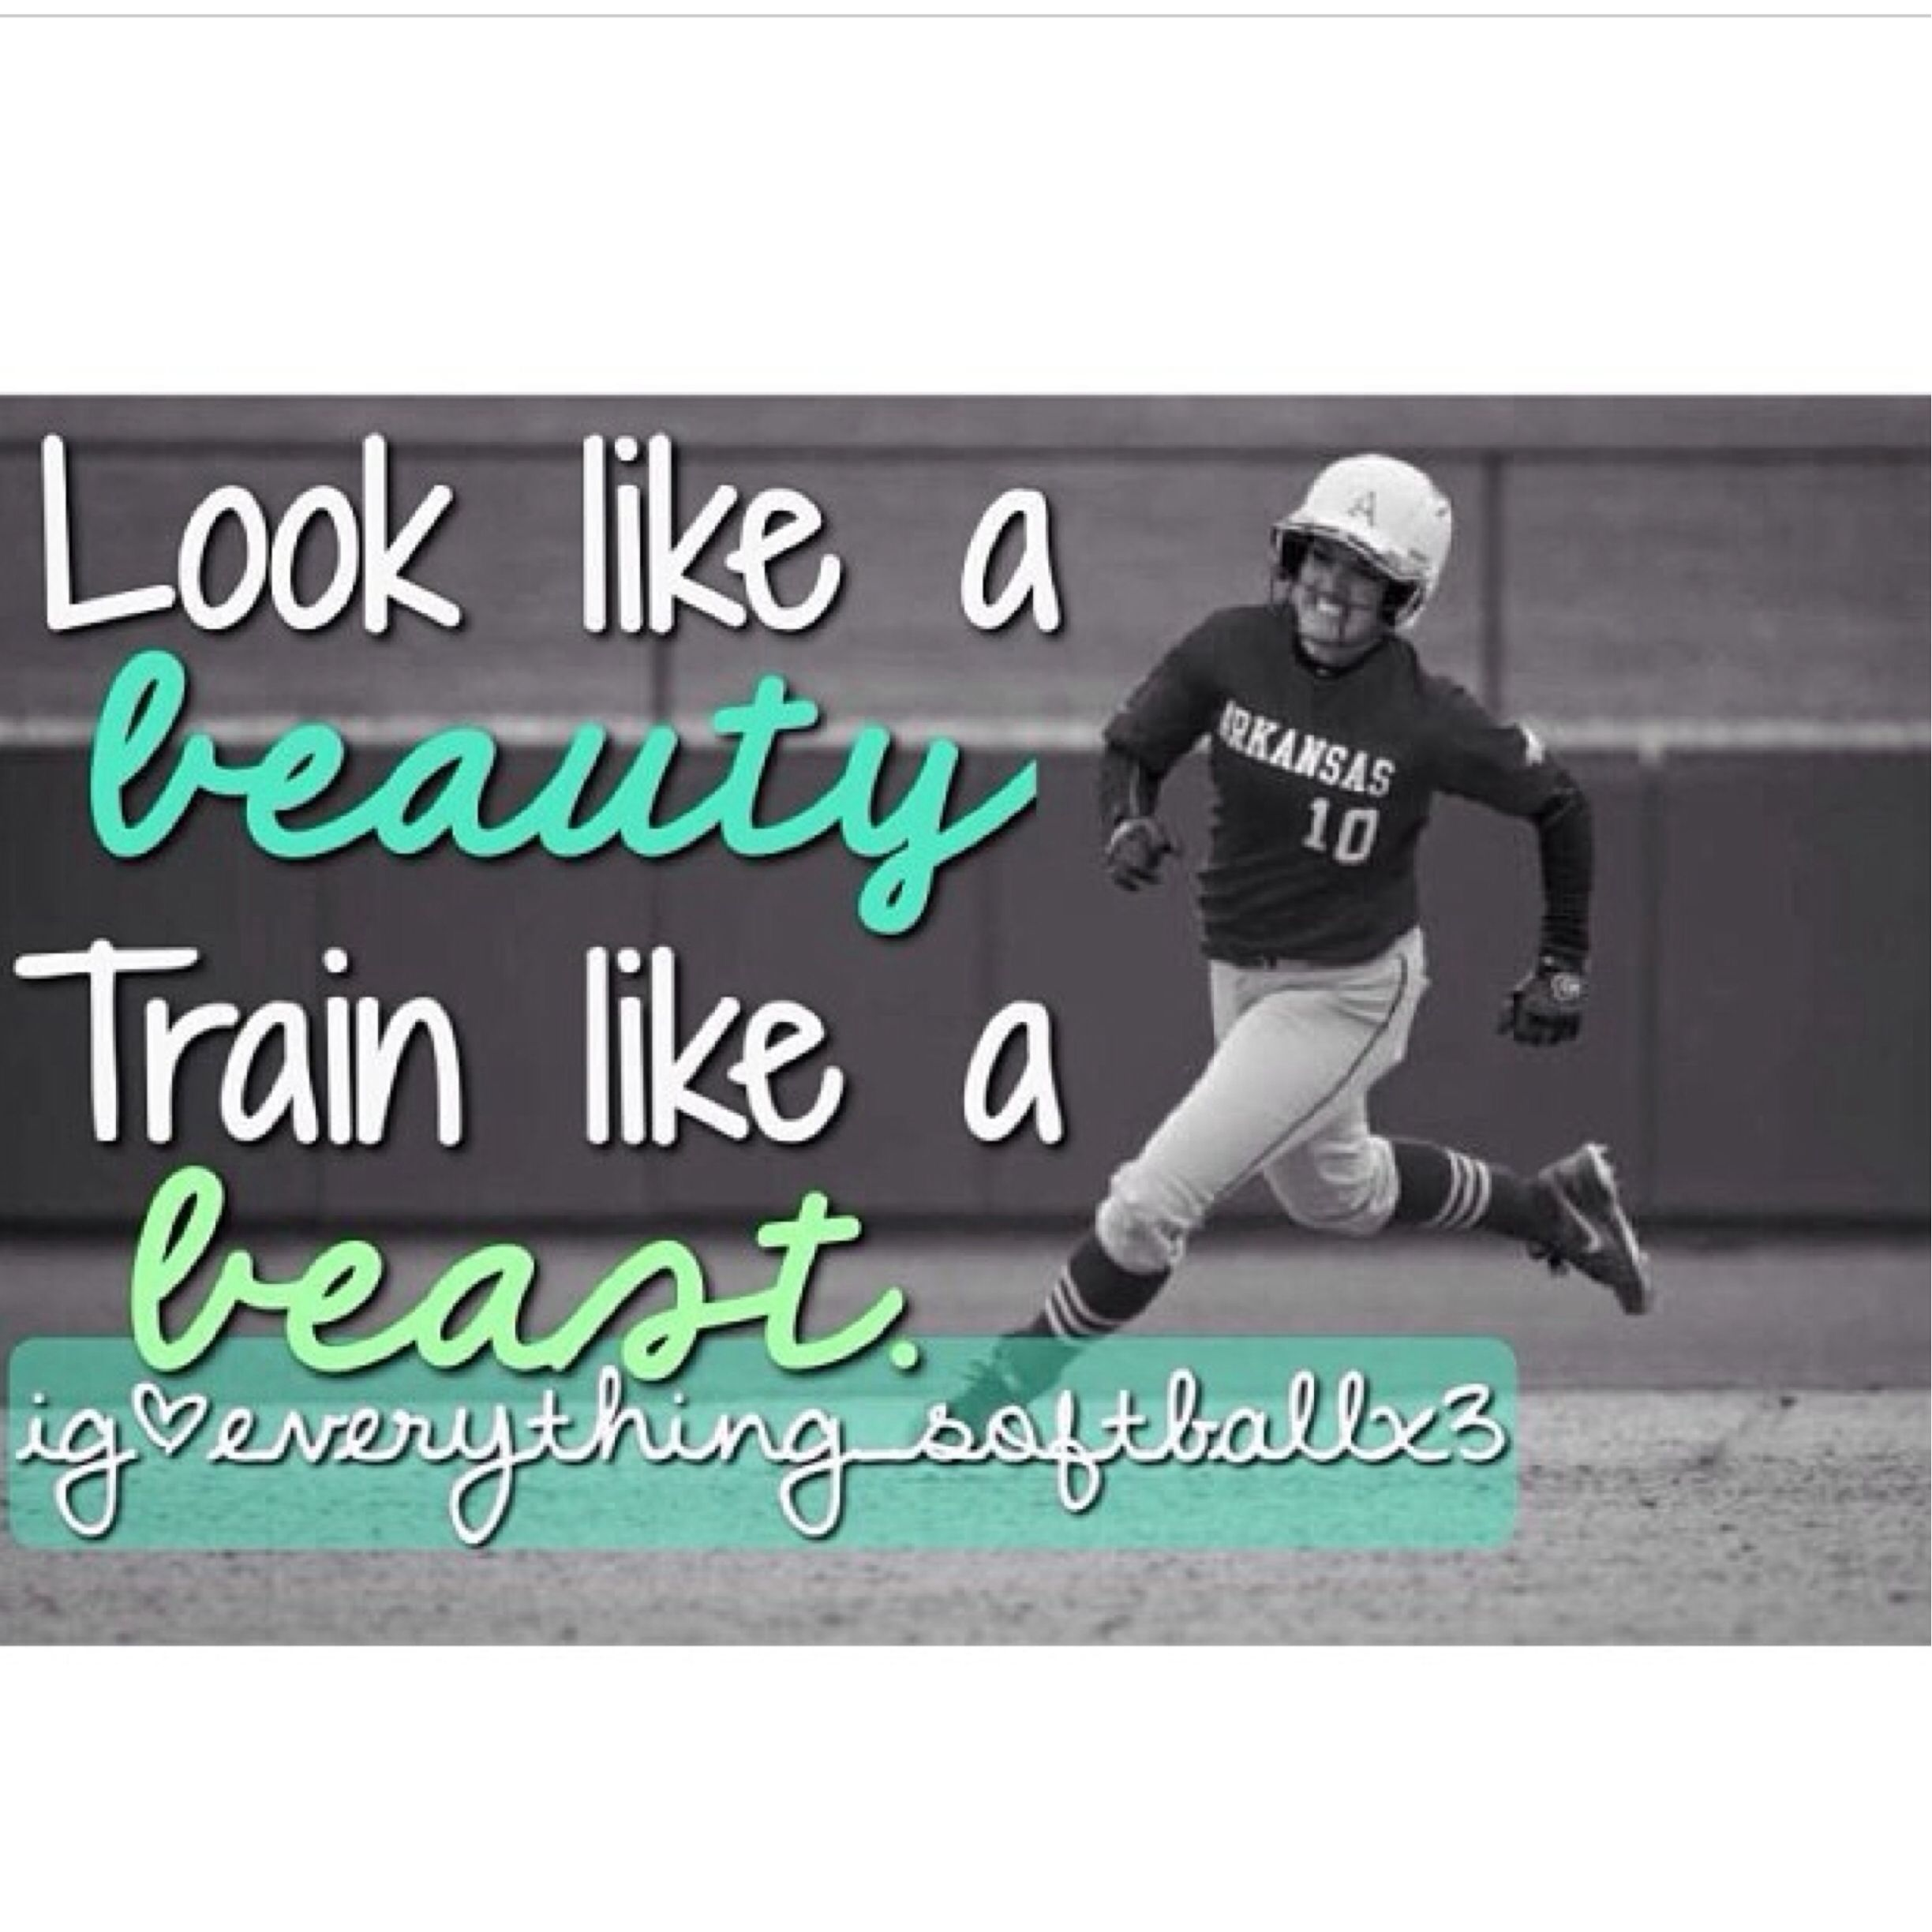 inspirational quote for my softball players out there